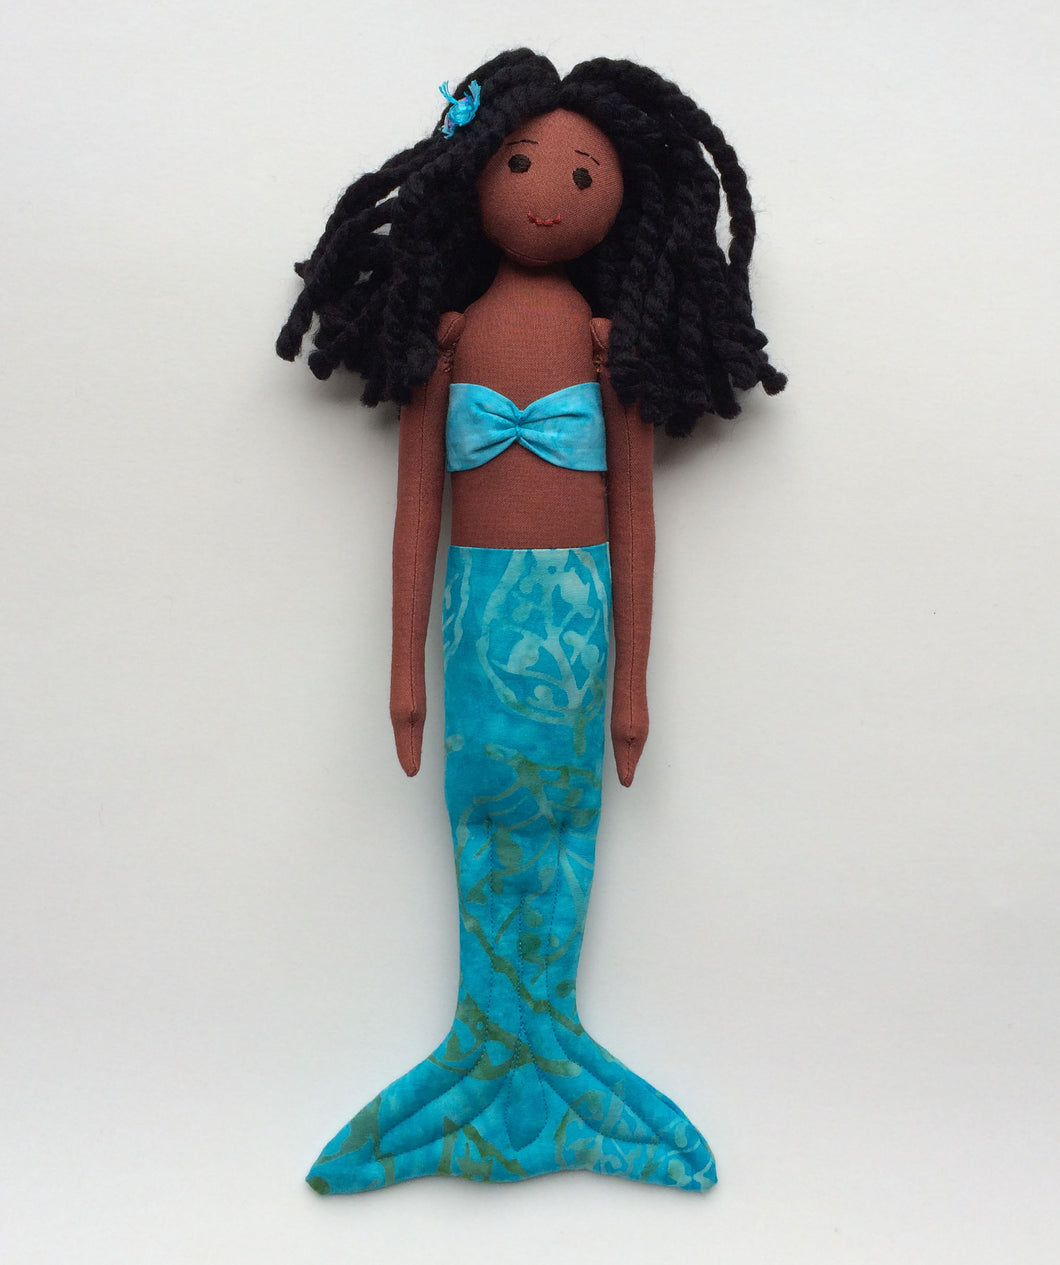 Medium brown African-American mermaid doll with blue tail